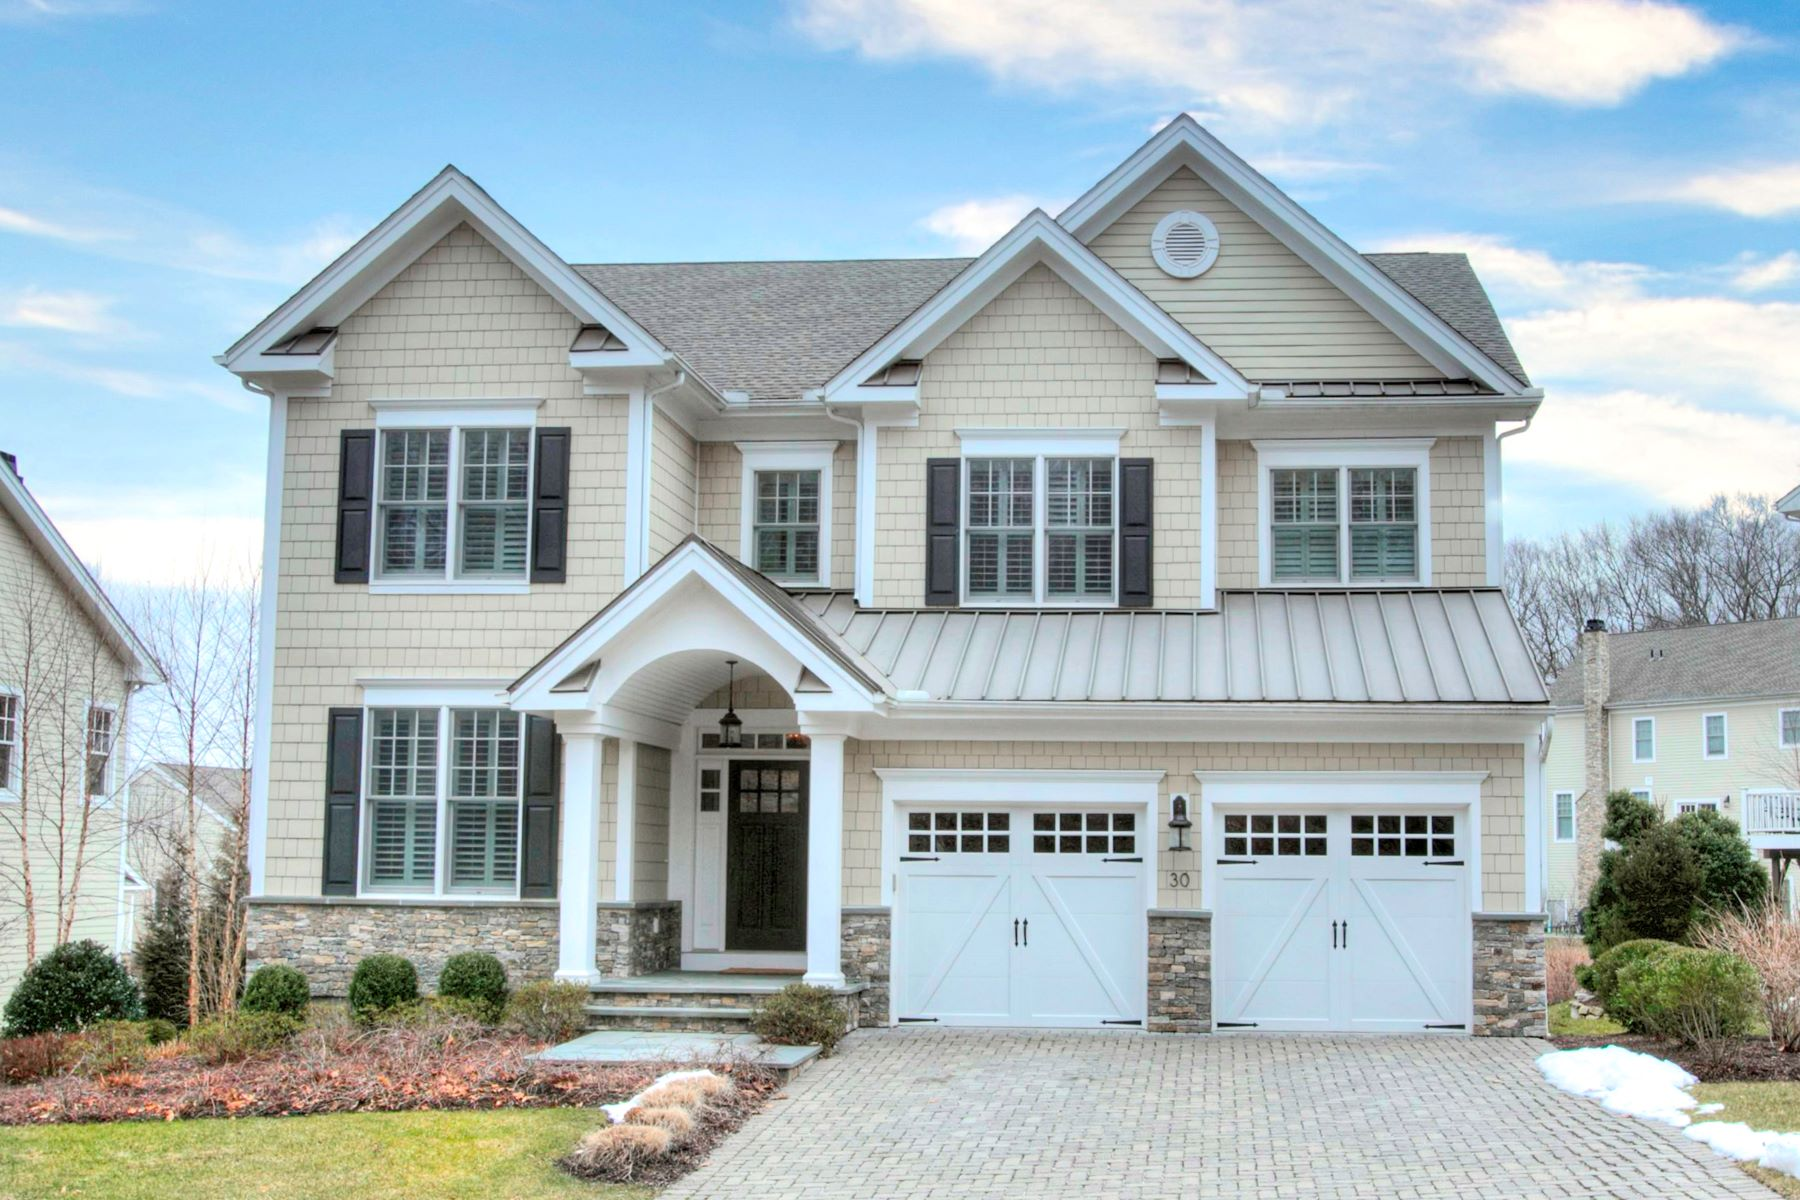 Single Family Homes for Sale at 30 River Ridge Lane Wilton, Connecticut 06897 United States